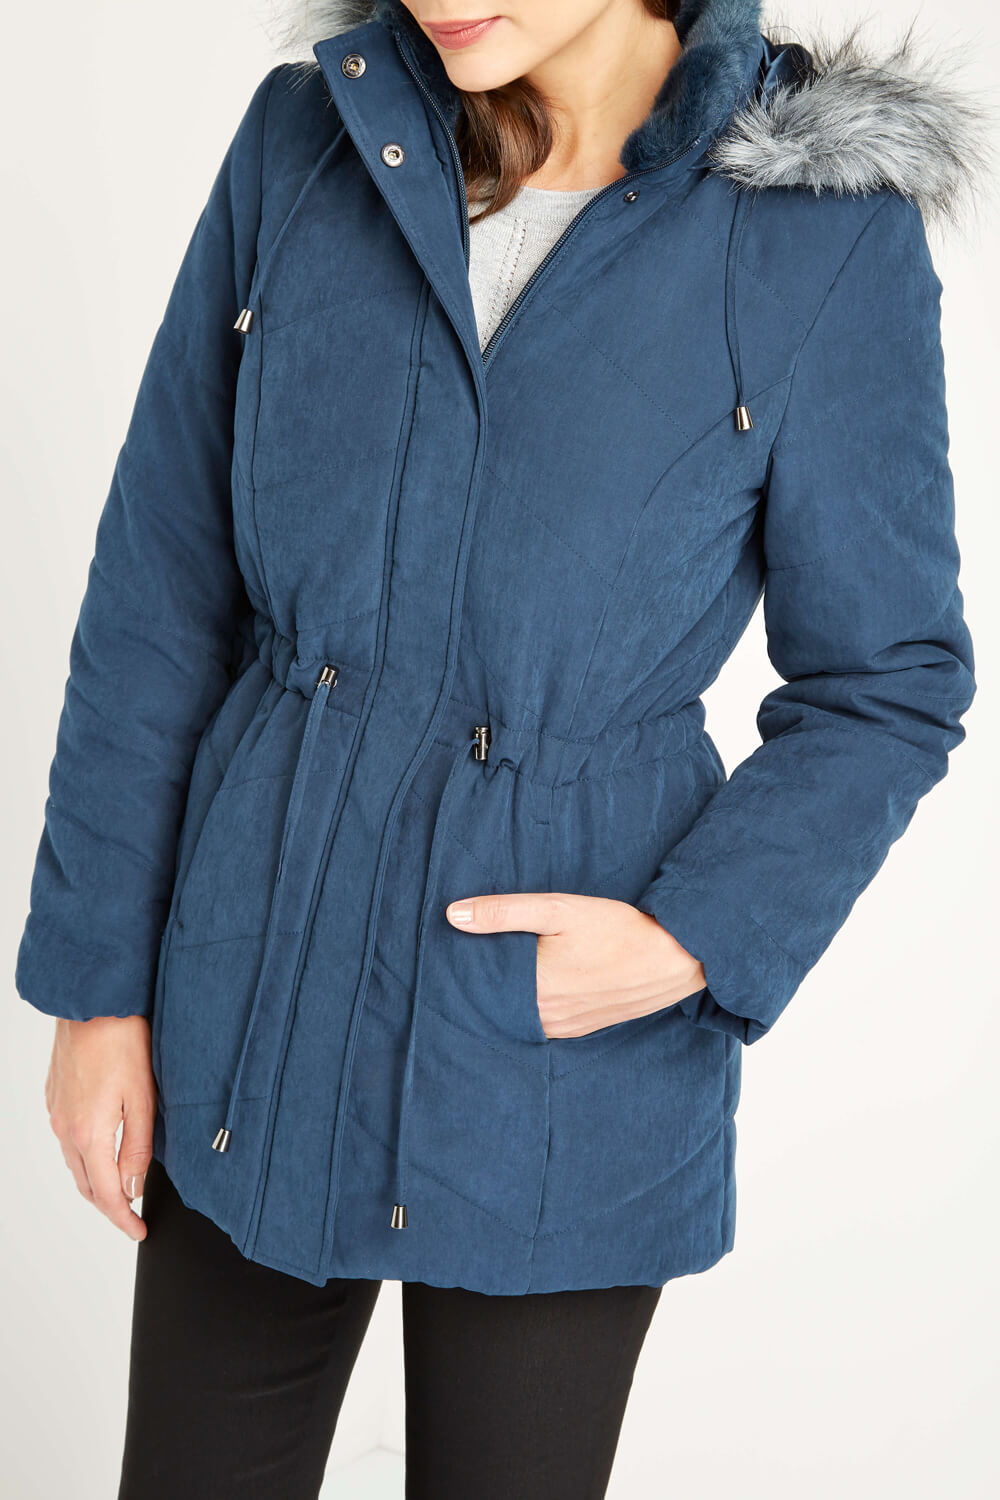 Roman-Originals-Women-039-s-Blue-Quilted-Parka-Coat-with-Hood-Sizes-10-20 thumbnail 17